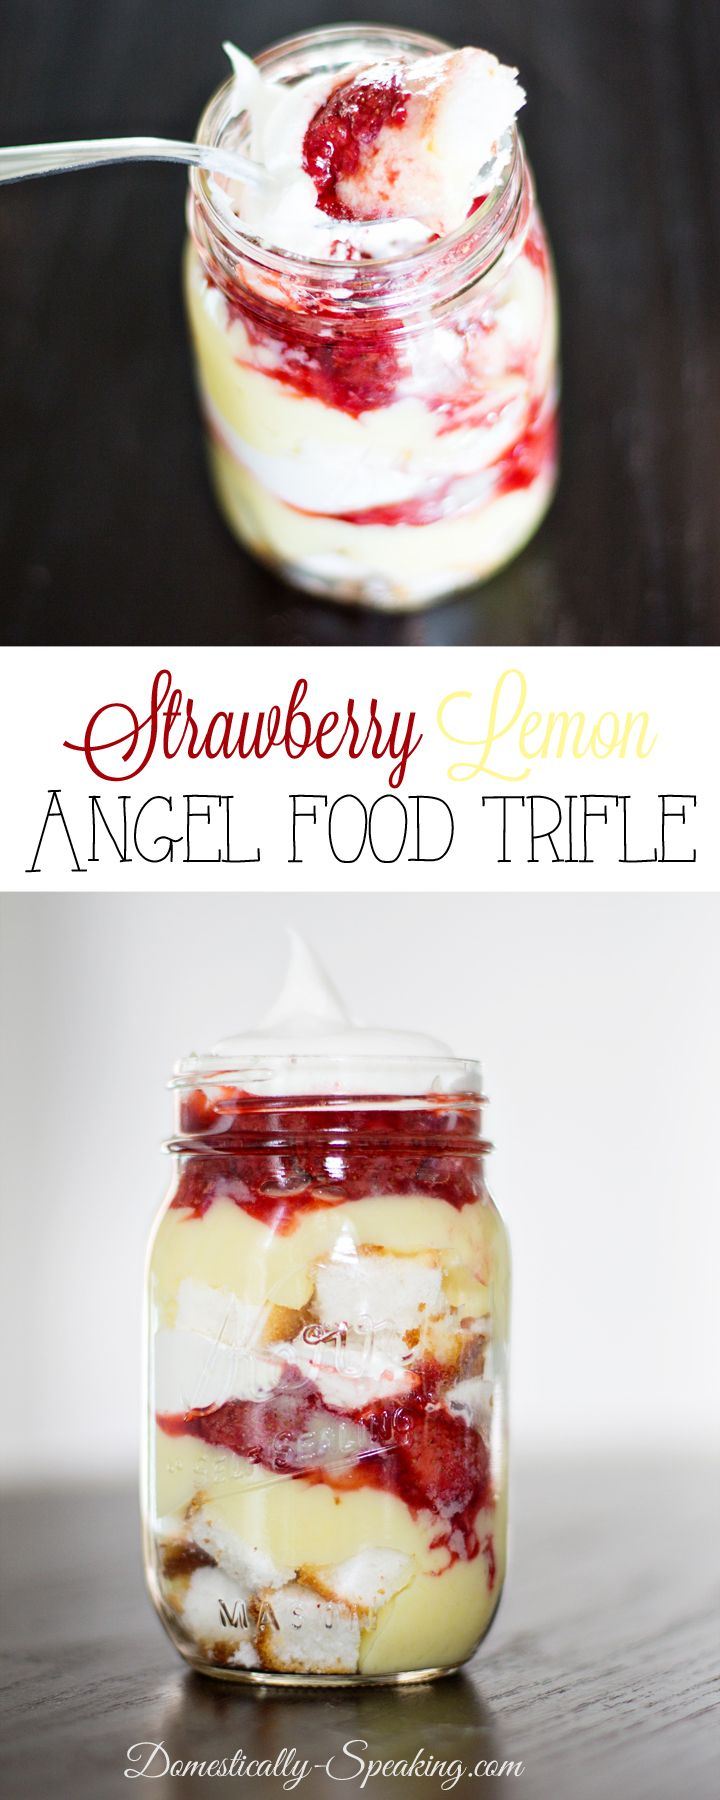 Mason Jar Strawberry Lemon Angel Food Cake Trifle